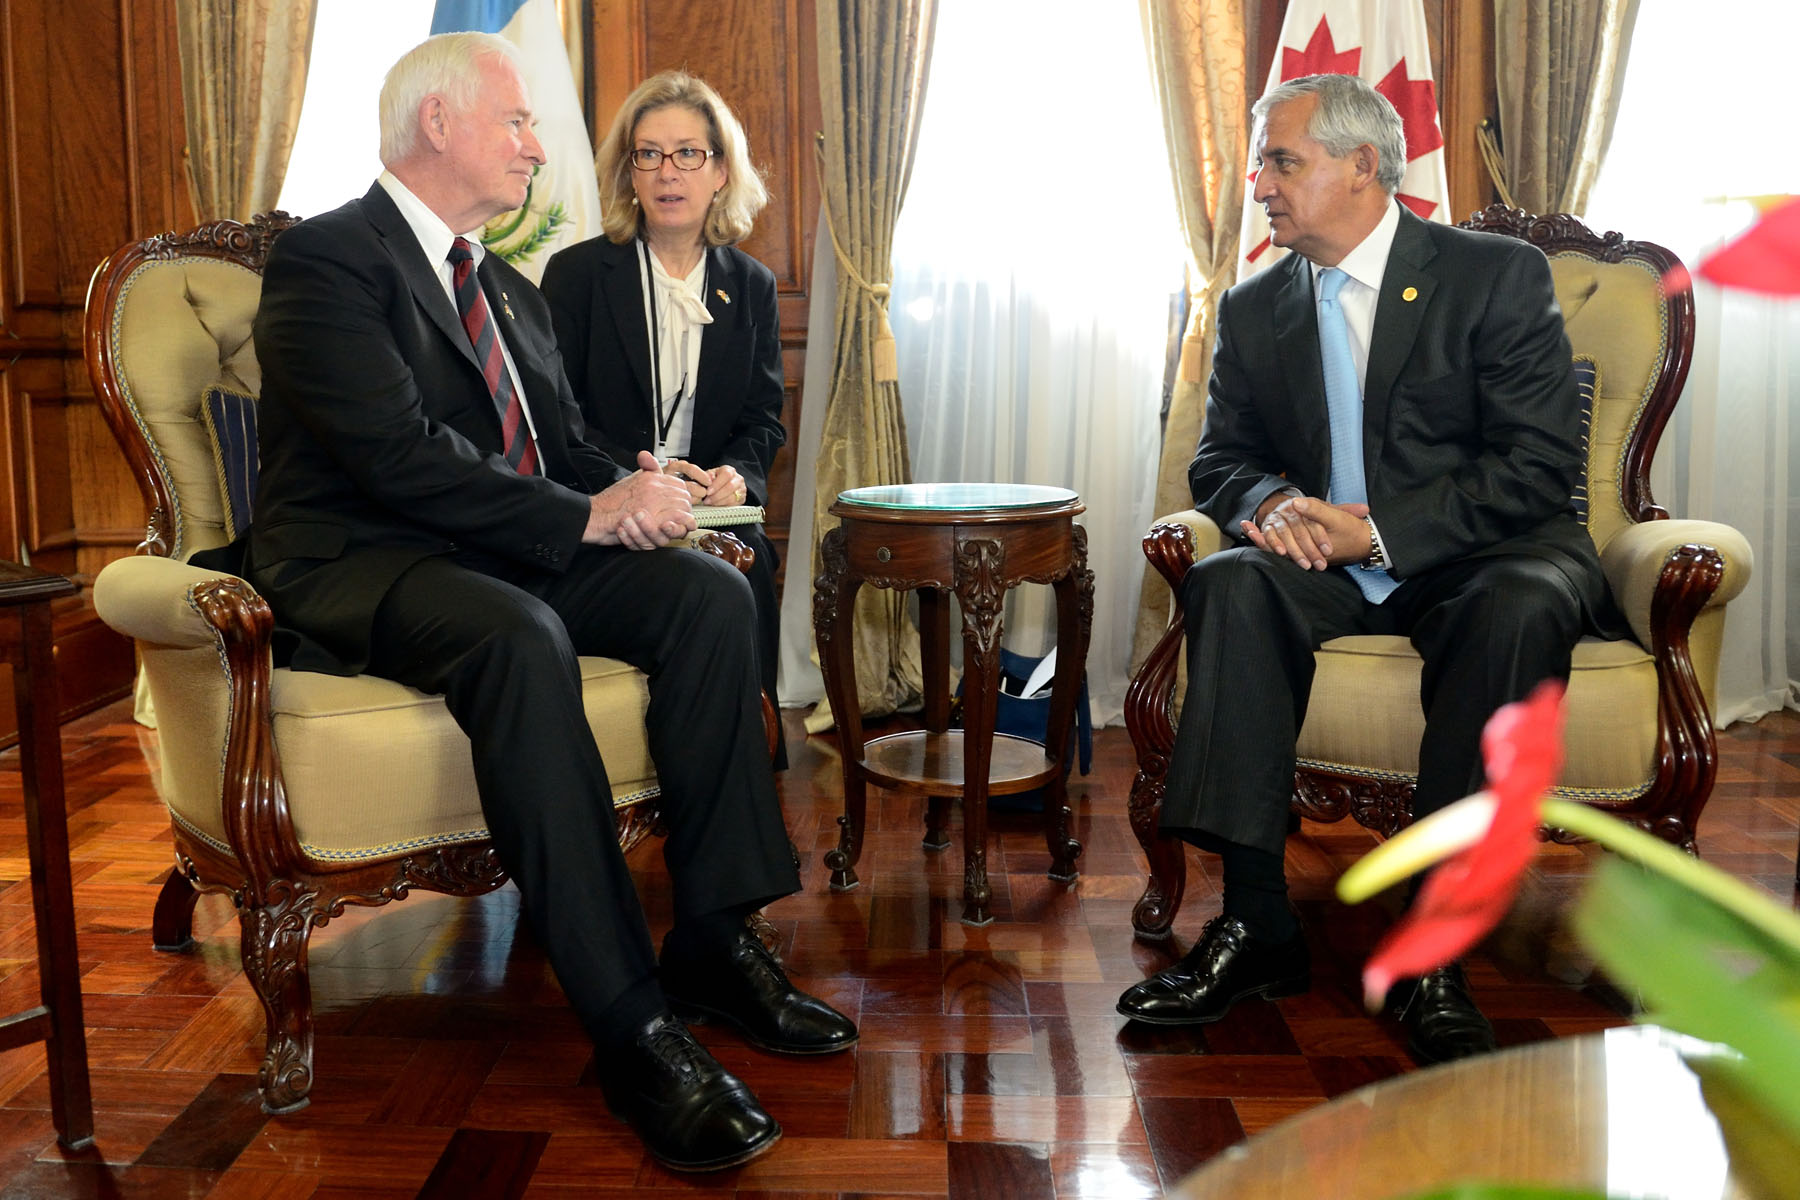 Following the ceremony, the Governor General met with the President of the Republic of Guatemala to discuss Canada's strong links with Guatemala, namely in the areas of justice, security and trade, as well as food security and nutrition.